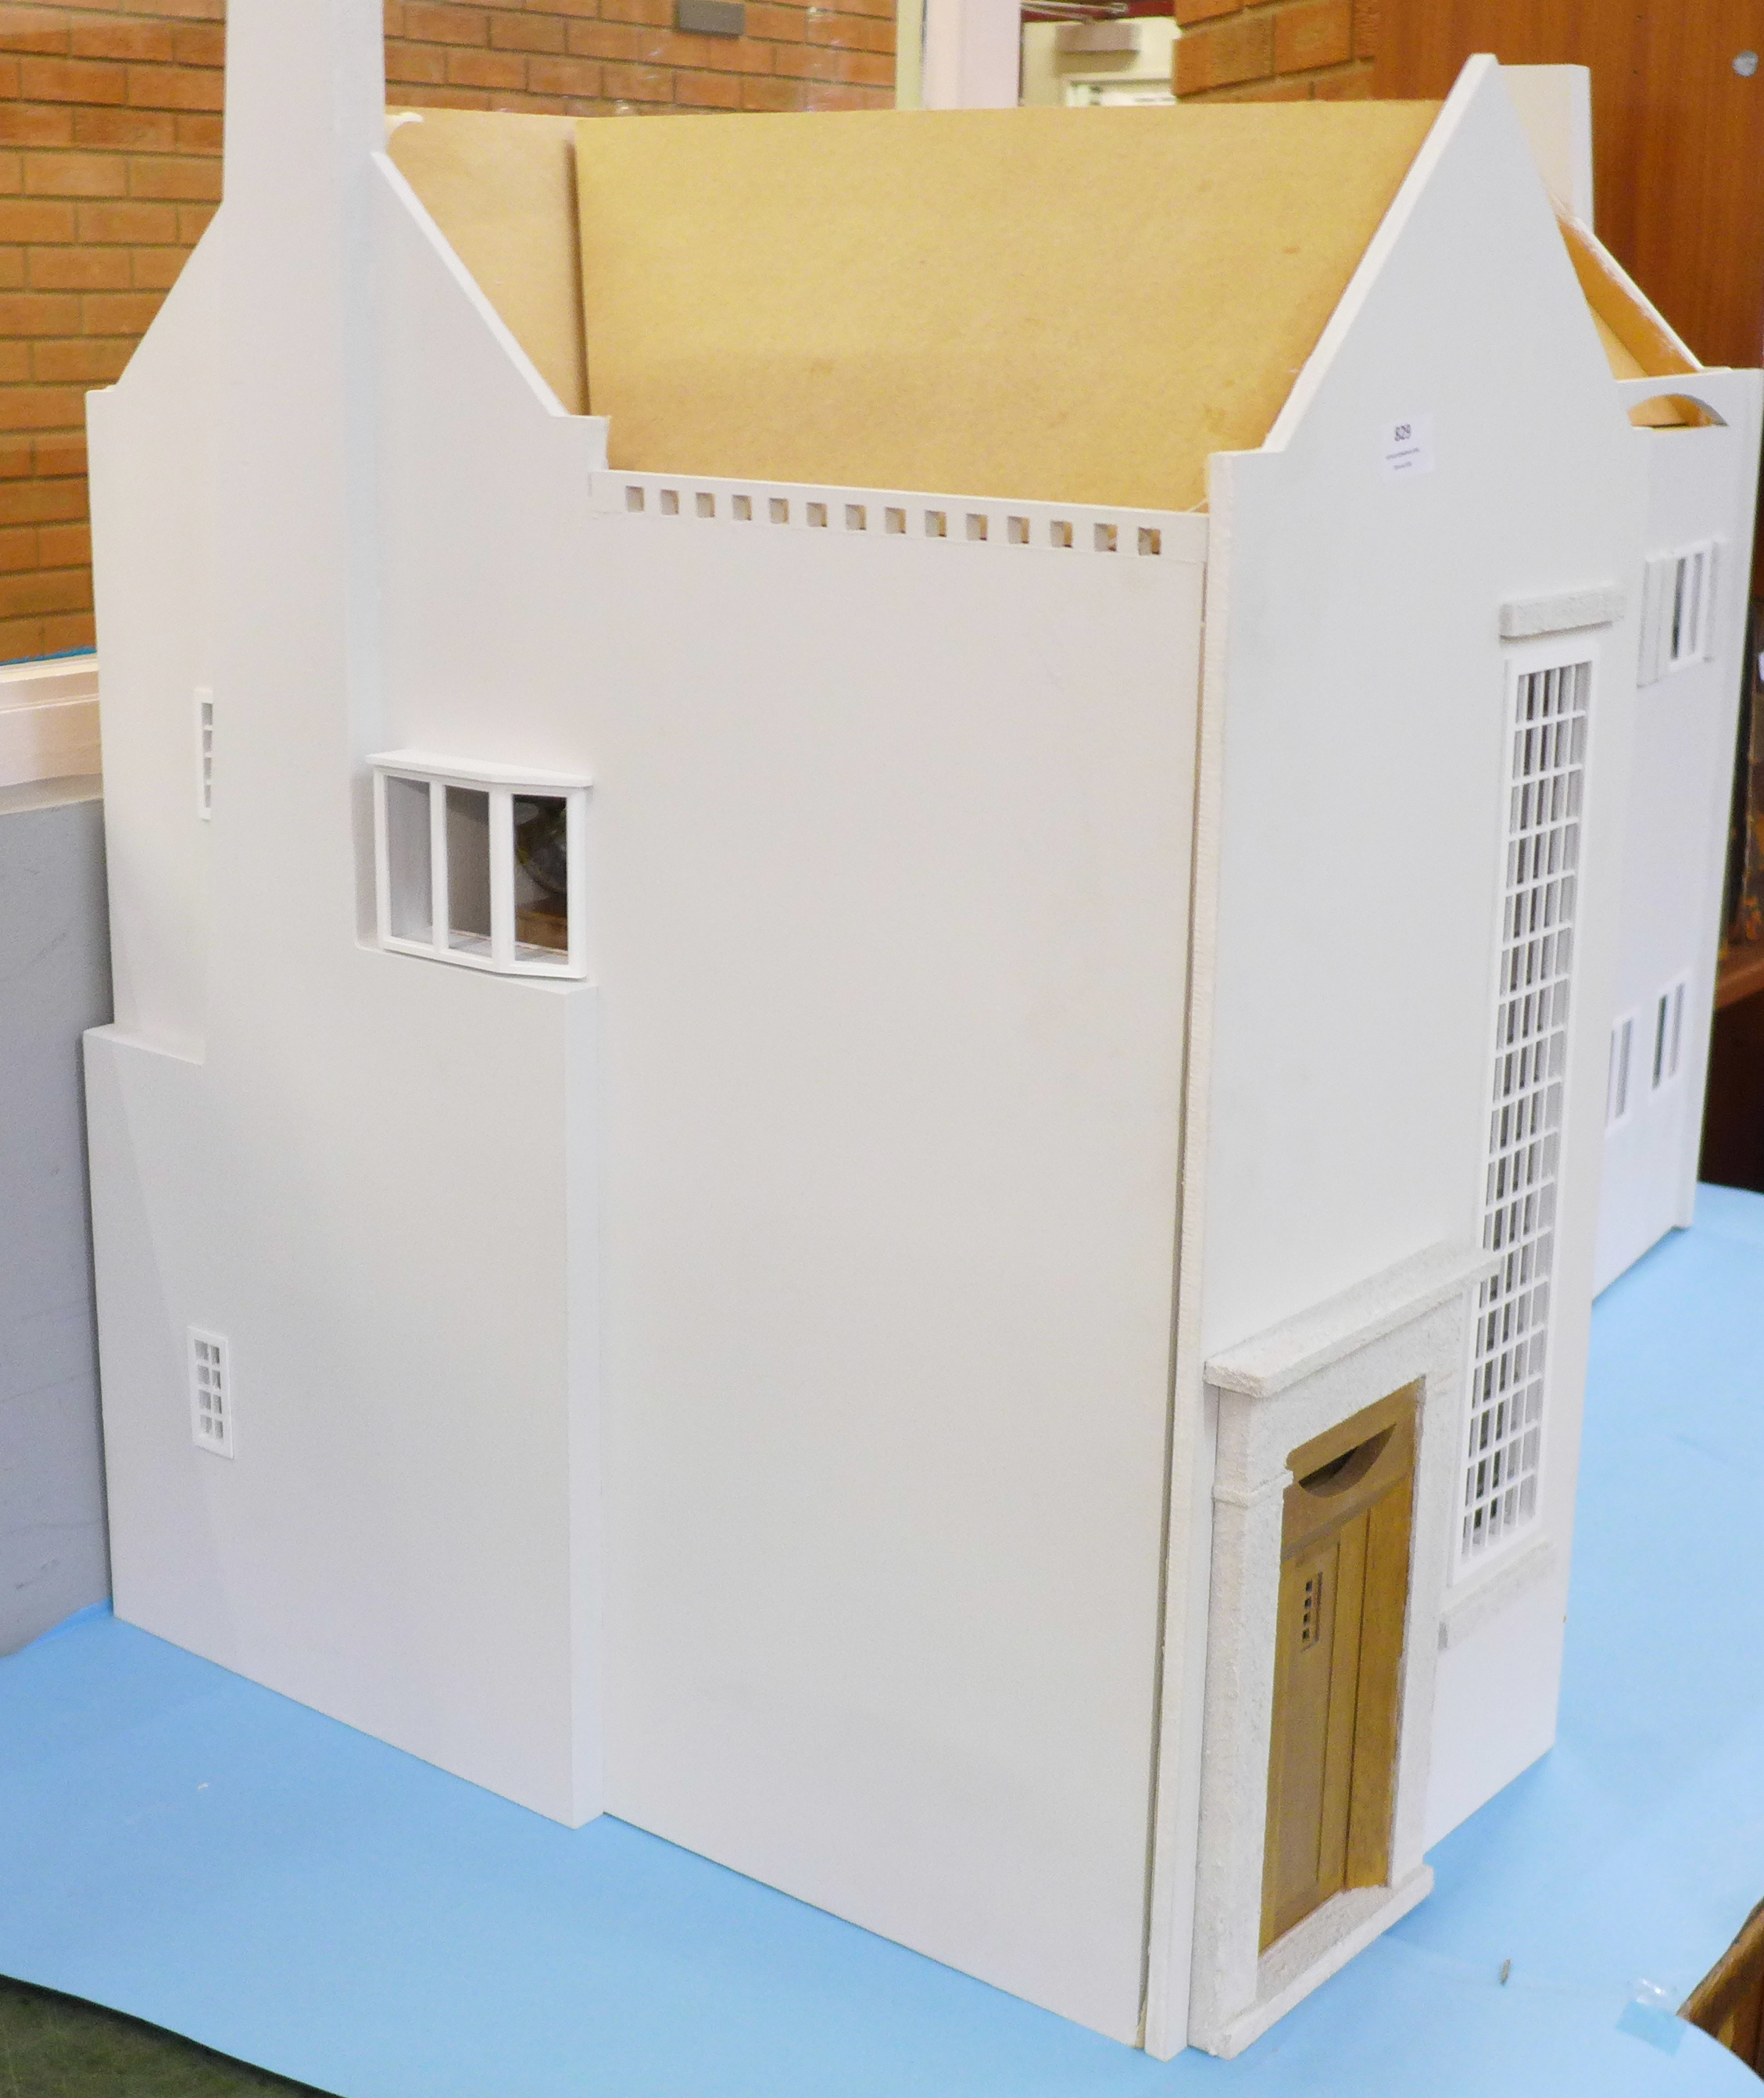 A Dolls House Emporiun Charles Rennie Makintosh-style Scottish House and Furniture. Assembled from a - Image 3 of 18